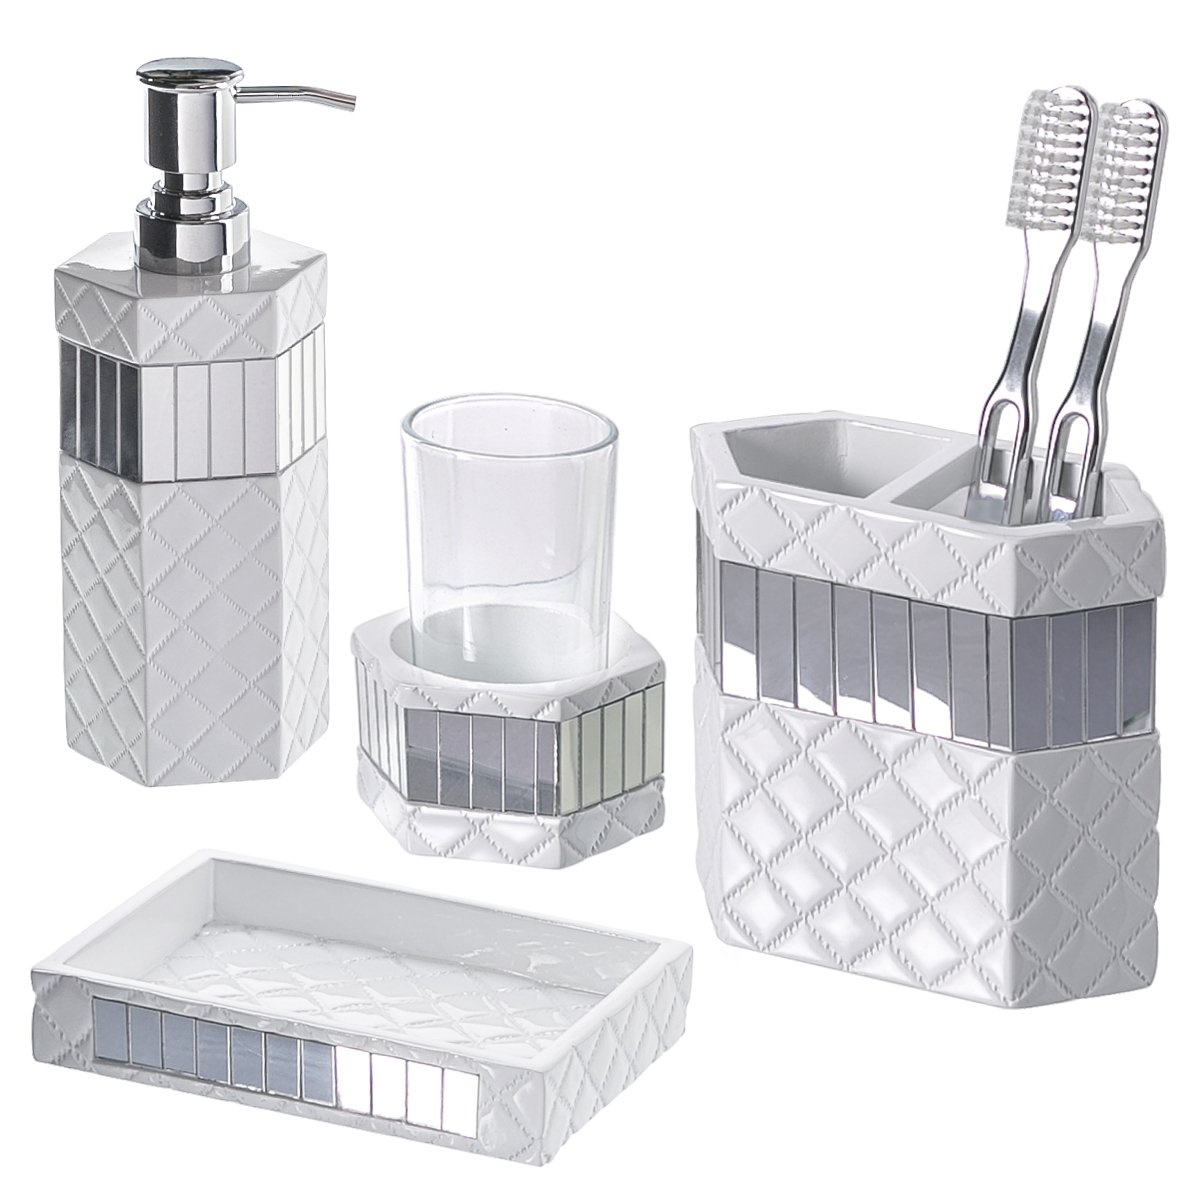 Amazon com  Creative Scents Quilted Mirror Bathroom Accessories Set   4 Piece  Includes Soap Dispenser  Toothbrush Holder  Tumbler   Soap Dish   Gift Package. Amazon com  Creative Scents Quilted Mirror Bathroom Accessories